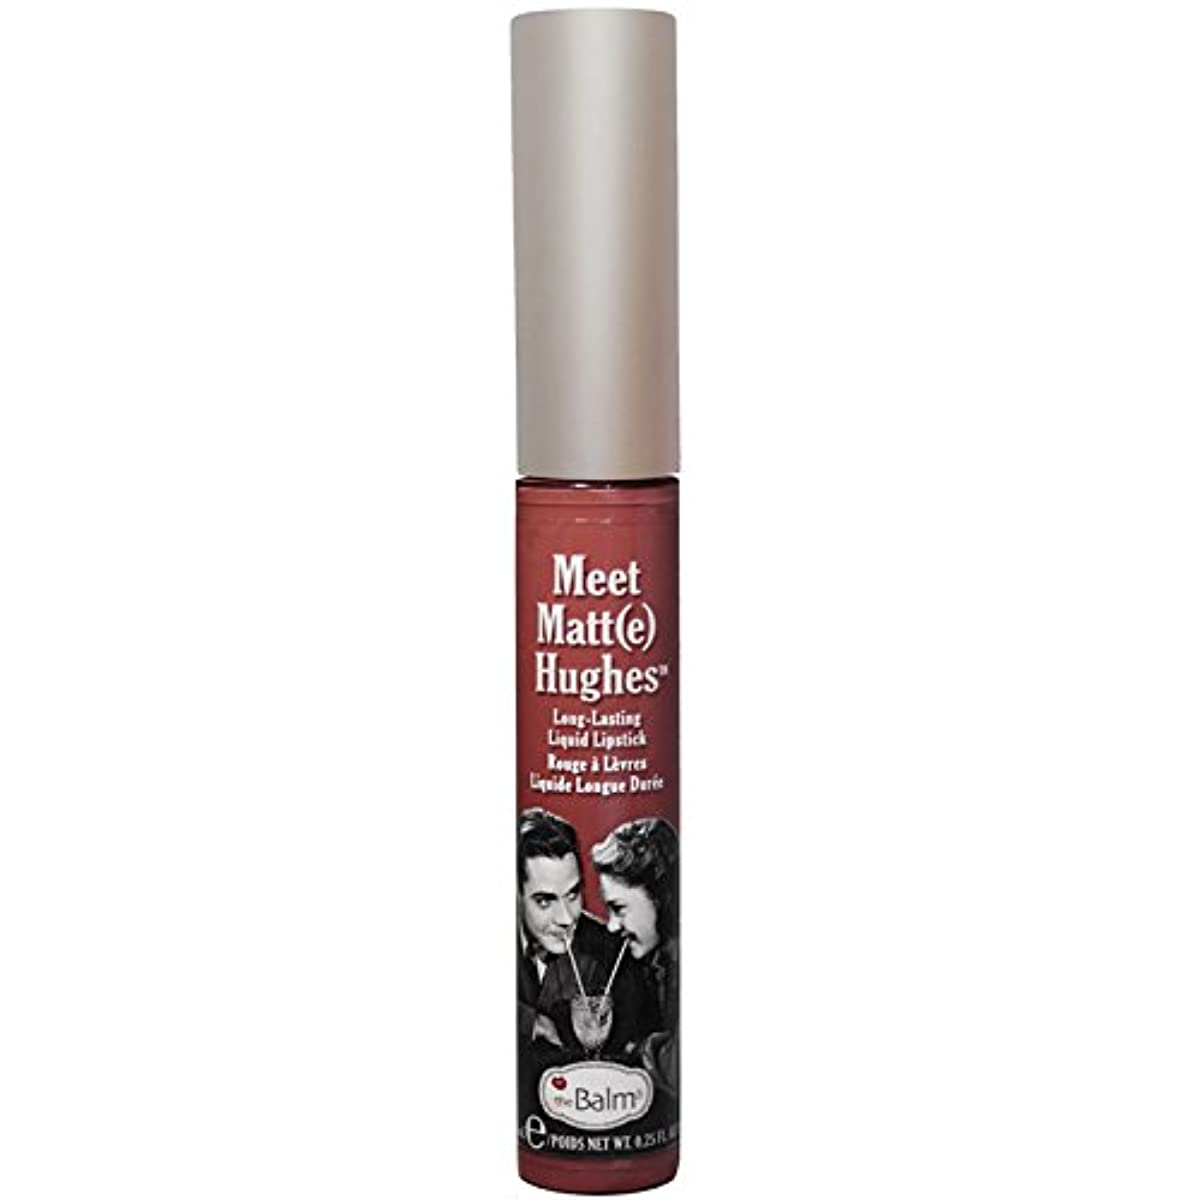 ノーブル鉱夫なんとなくtheBalm - Meet Matt(e) Hughes Long-Lasting Liquid Lipstick Trustworthy [並行輸入品]